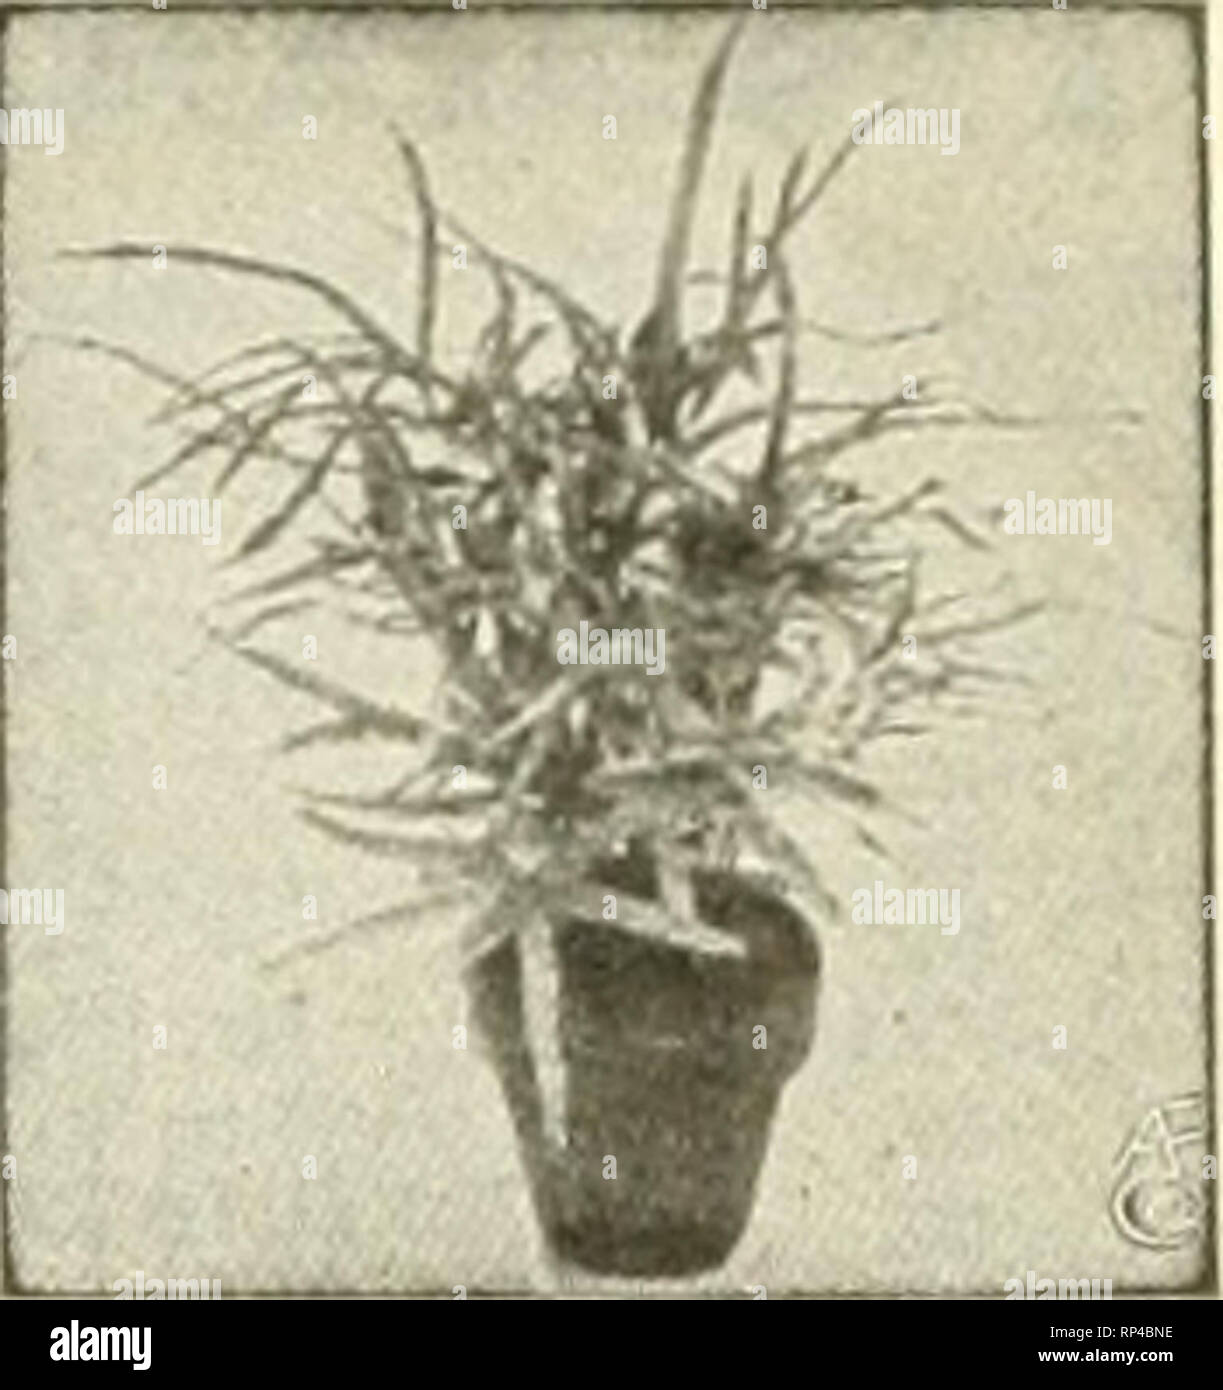 . The American florist : a weekly journal for the trade. Floriculture; Florists. Pteris Wilsonl. EXTRA FINE Plants, PALMS and FERNS FOR THE BEST ORDER OF US.. Pteris Serrulata. Bedding Plants ACHYRANTHES—Rooted Cuttings. Per 1000 Metallica $ 6.00 P. de BaUey 10.00 Llndenli 8.00 Warscewiczli 6.00 ACHYRANTHES—2-Inch. Per 100 P. de Bailey $2.60 Metallica 2.00 Lindenii 2.00 Warscewiczii 2.00 AGERATUM—2Inch. Per 100 Stella Gurney $2.00 Princess Pauline 2.00 COLEUS—Rooted Cuttings. Per 1000 Golden Bedder $6.00 Beckwiths Gem 6.00 Verschaffeltil 8.00 COLEUS—2-Inoh. Per 100 paster, red and yellow $2.00 - Stock Image